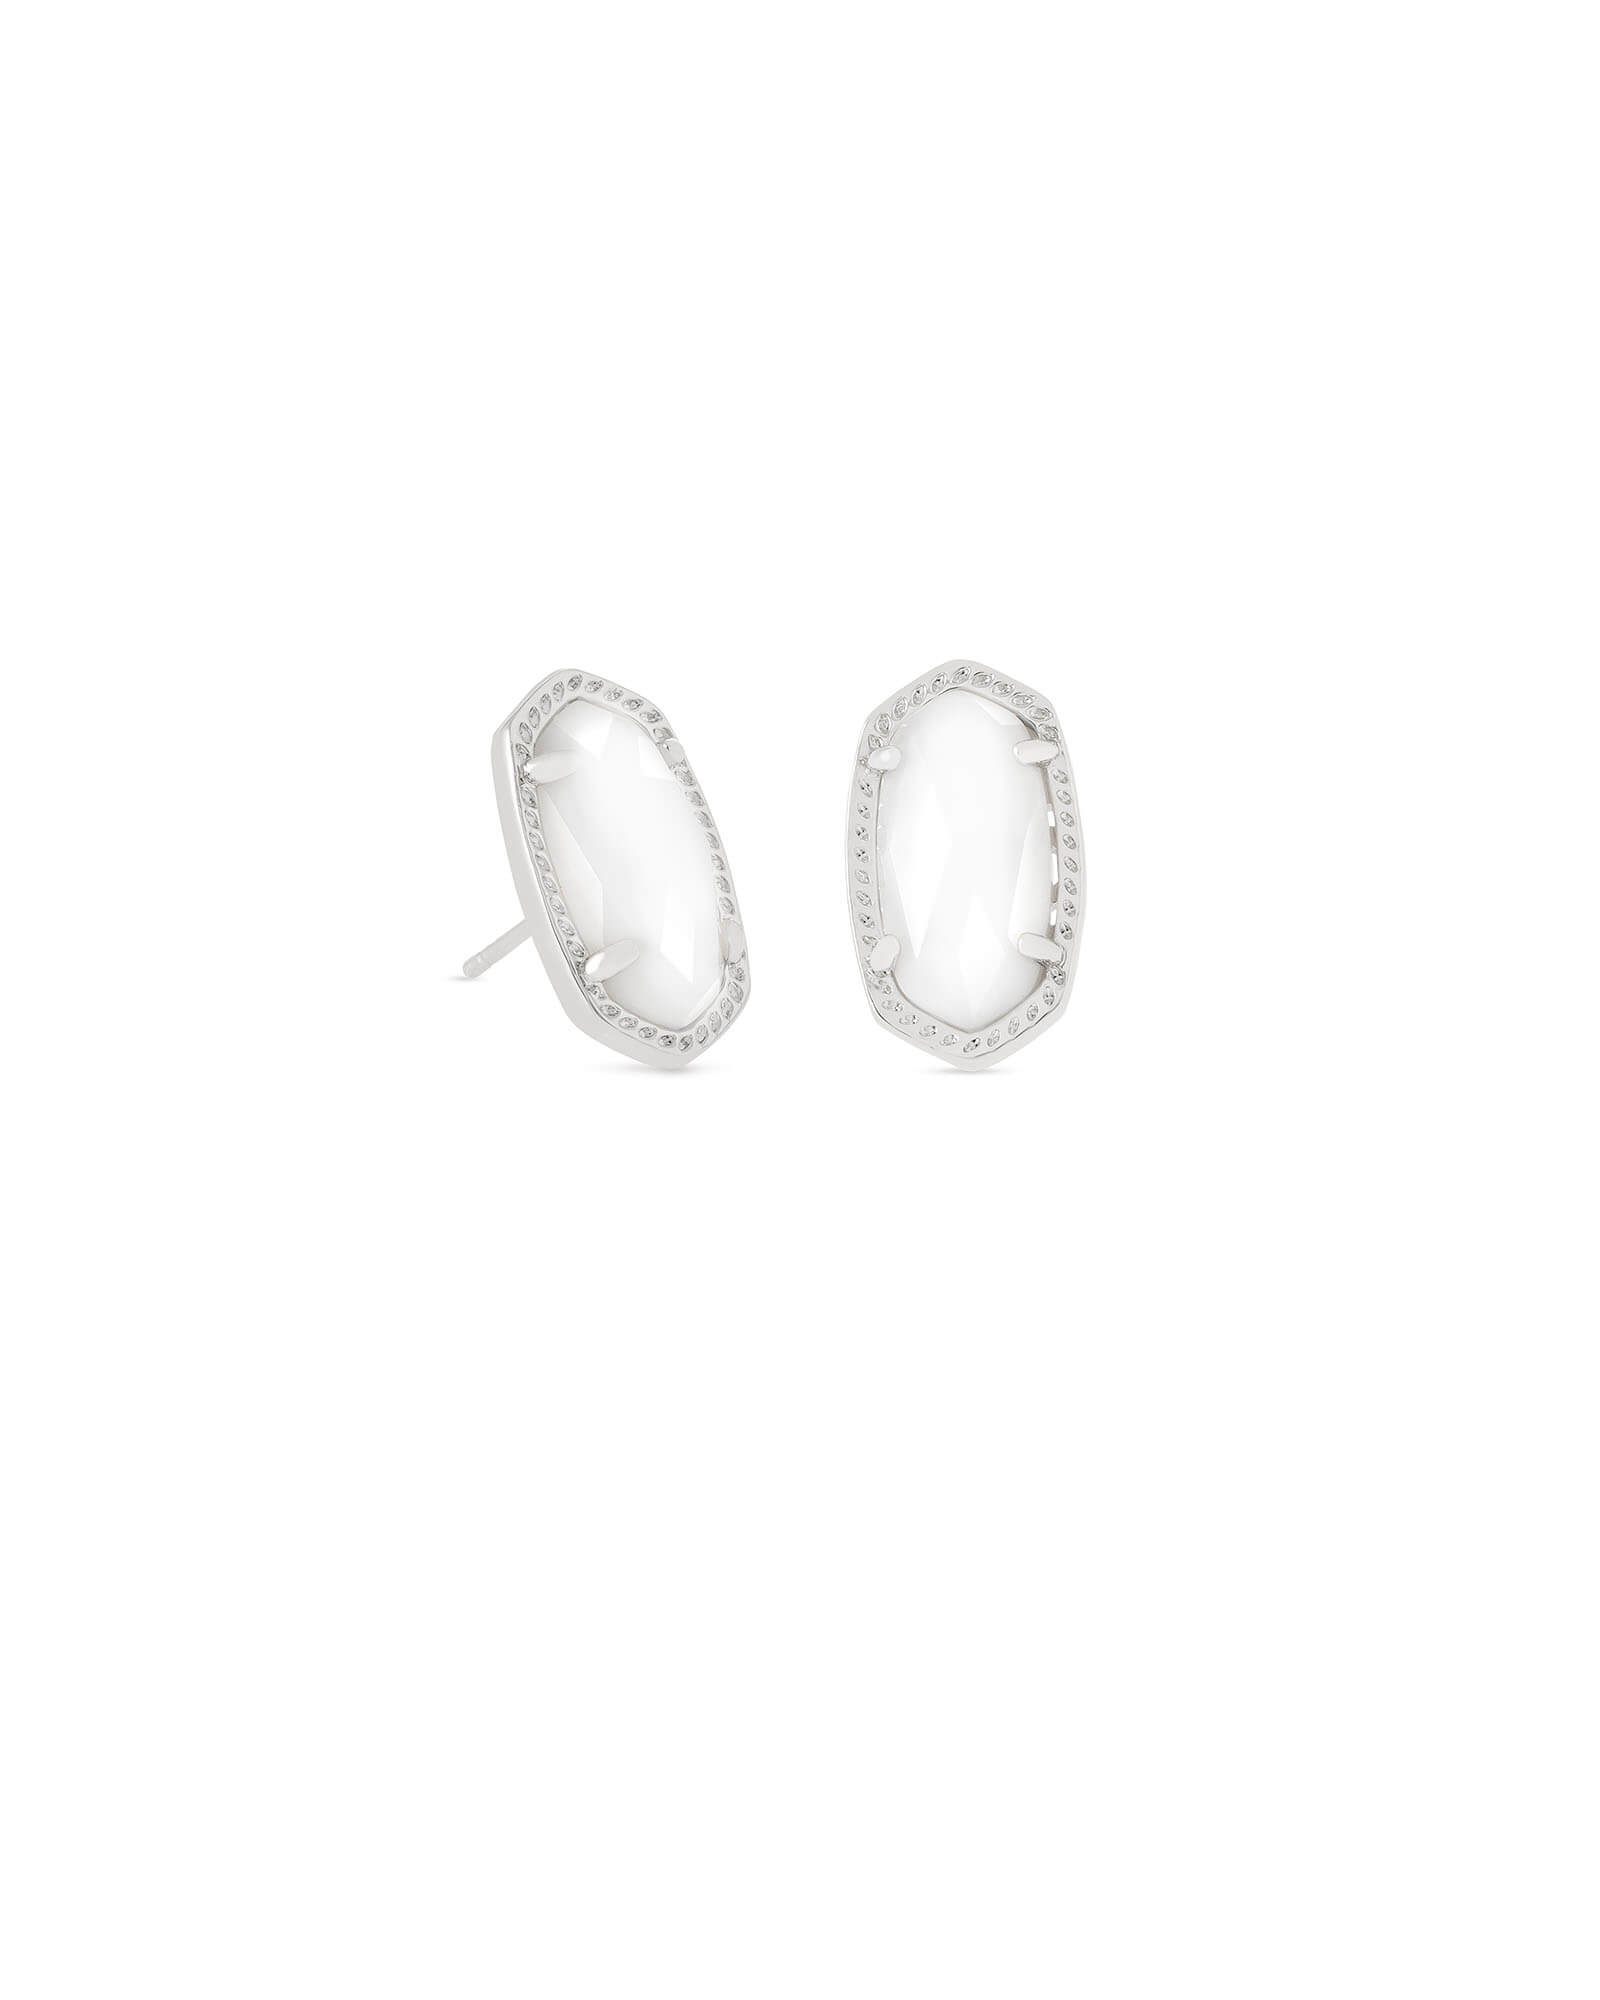 Ellie Silver Stud Earrings in White Pearl